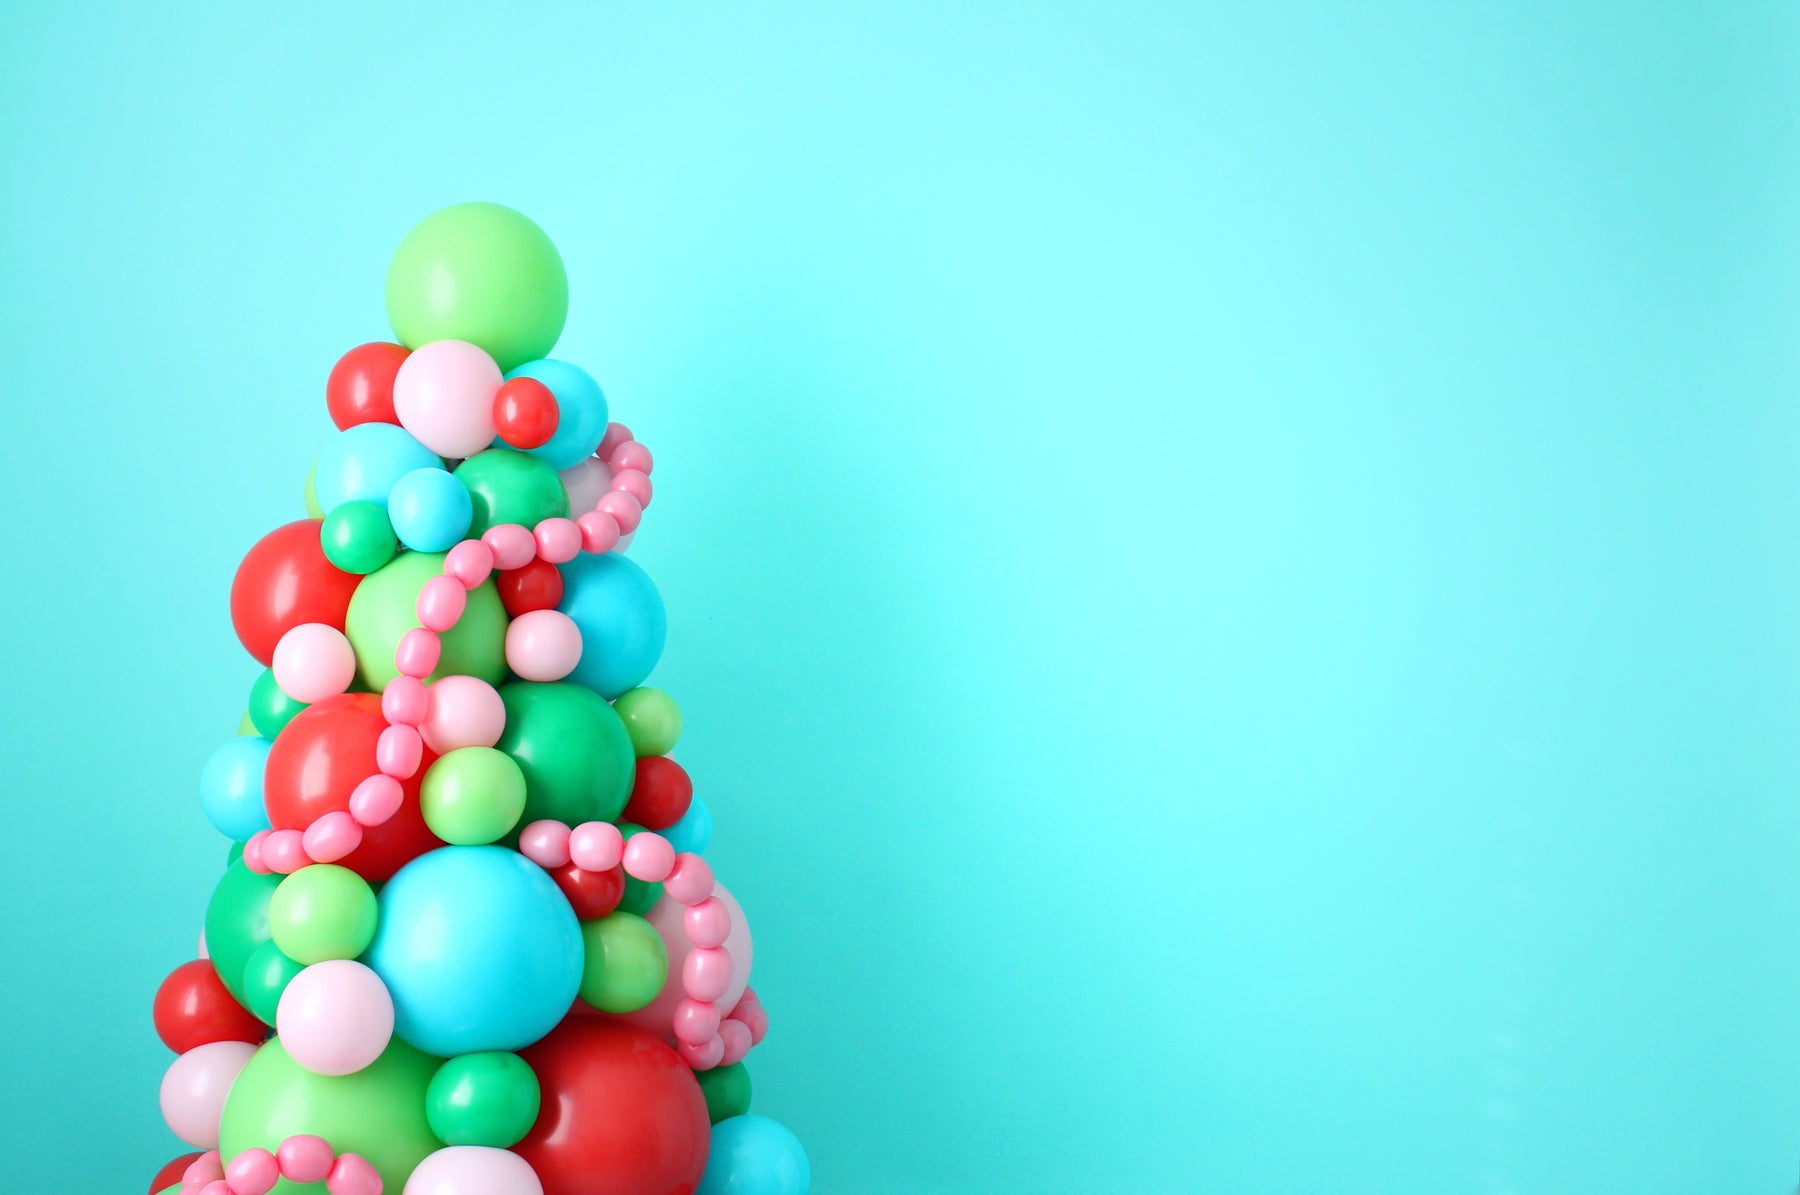 DIY Balloon Christmas Tree